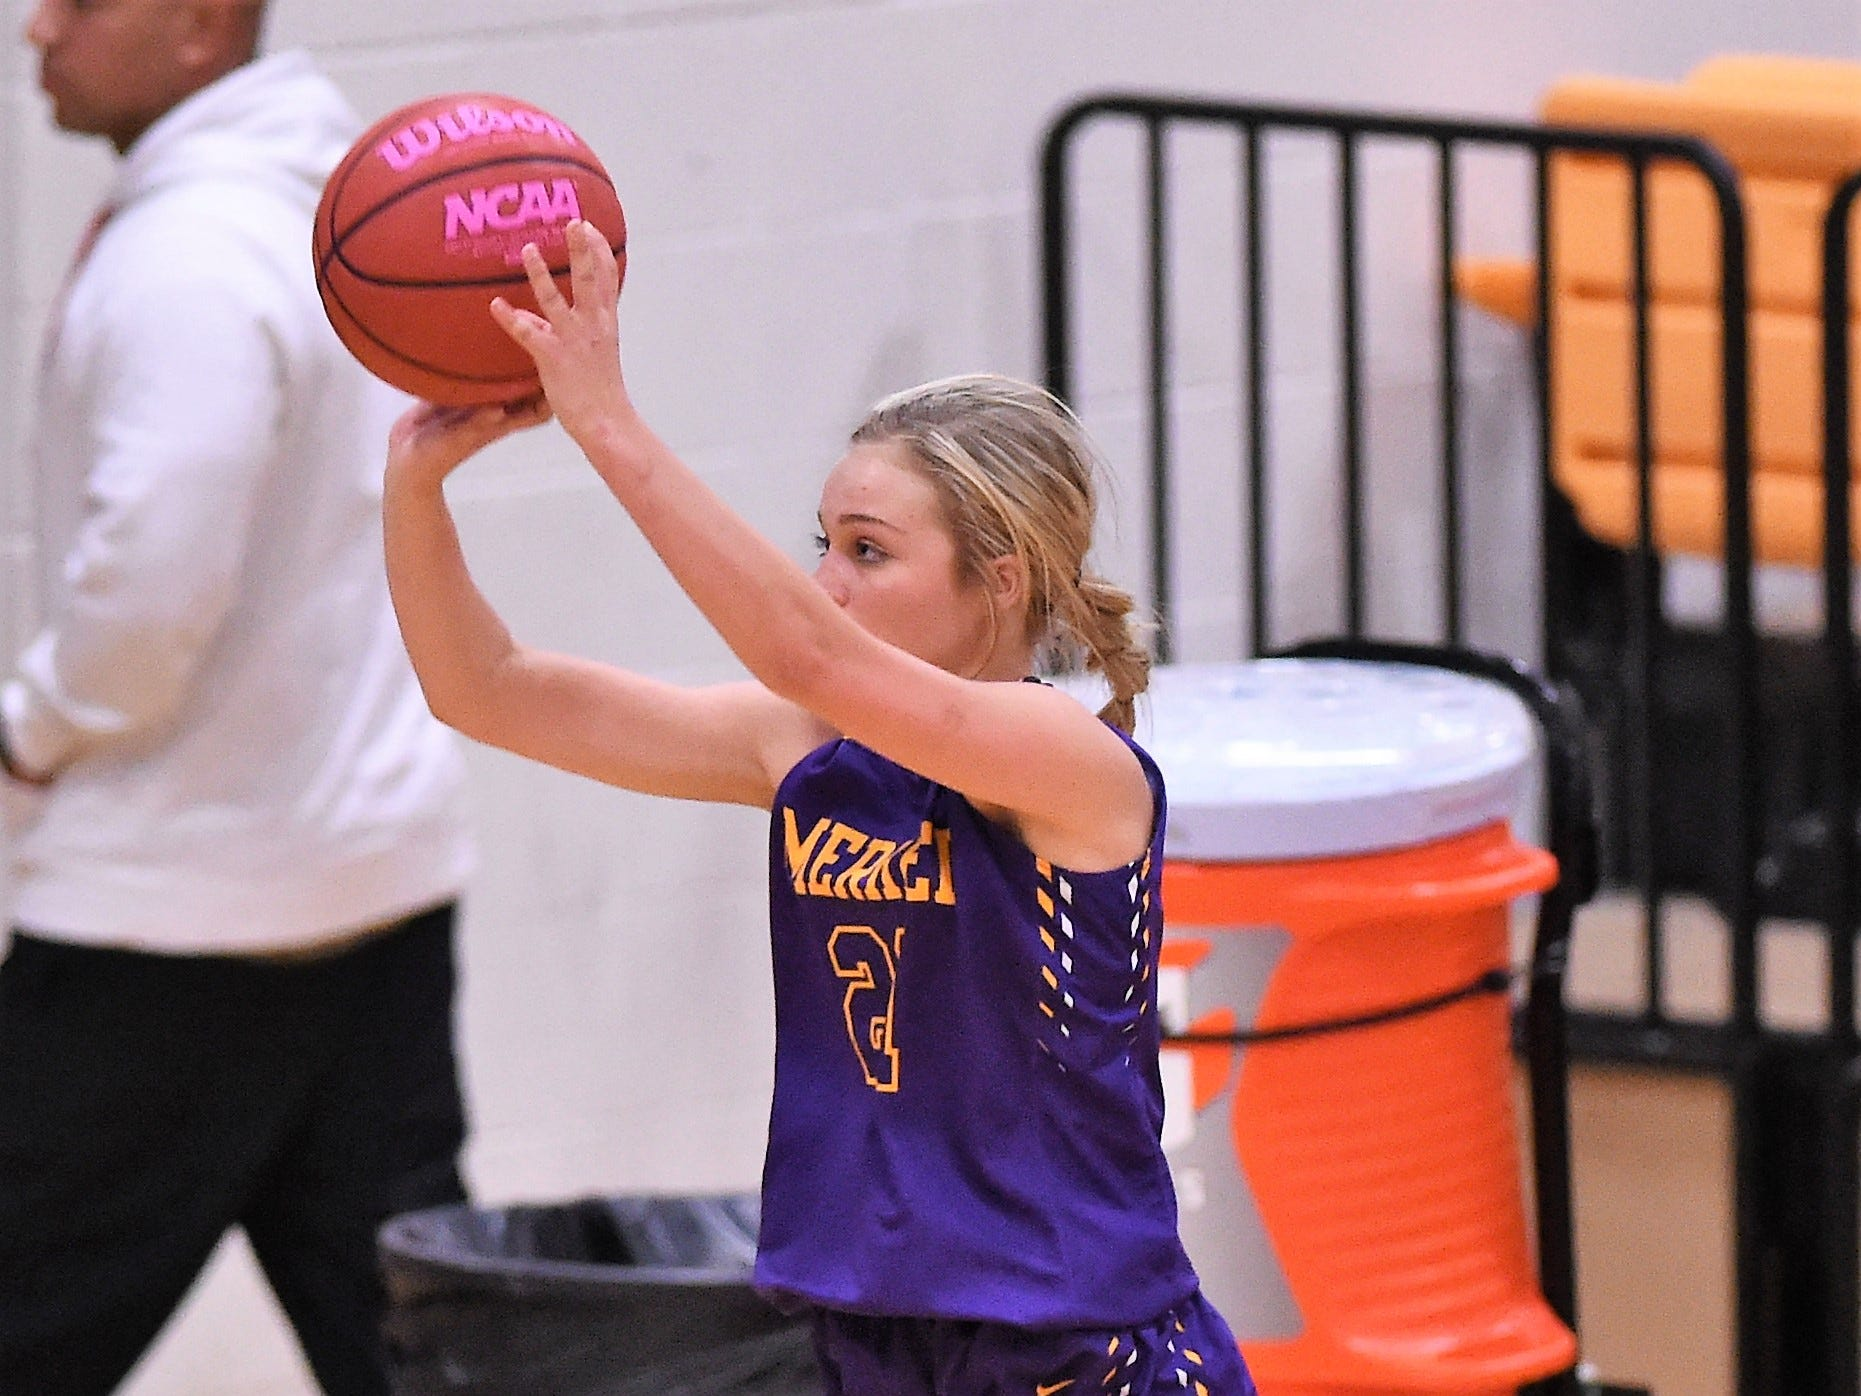 Merkel's Kinzi Hays (21) takes a 3-point shot against Wylie in the Coaches vs. Cancer Pink Out game on Tuesday, Dec. 4, 2018. The Lady Bulldogs won 75-39.